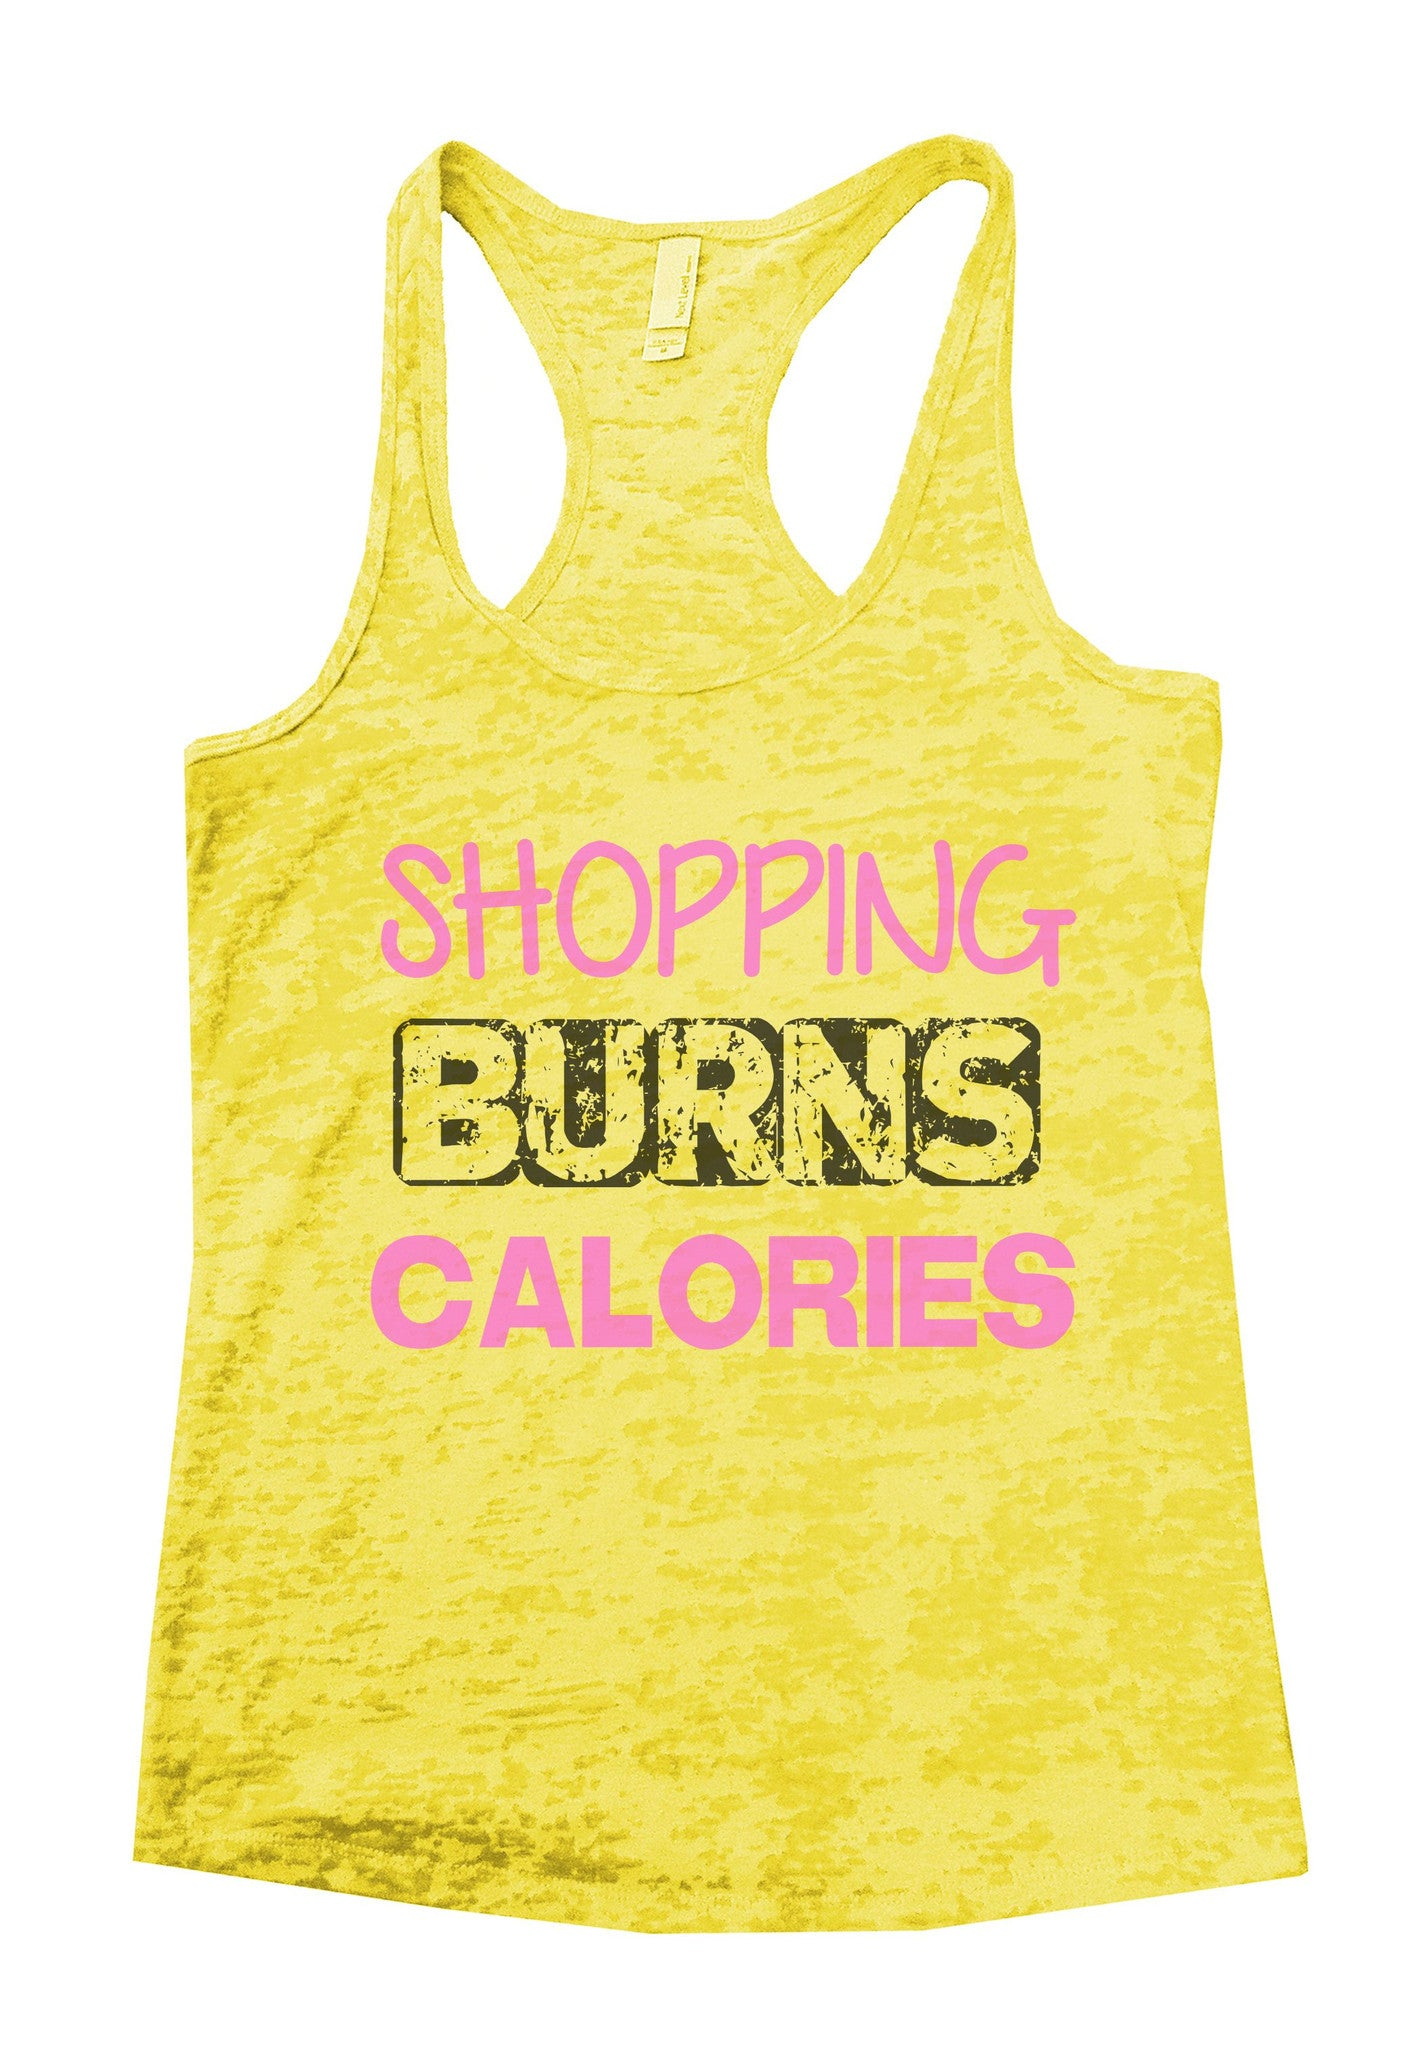 Shopping Burns Calories Burnout Tank Top By BurnoutTankTops.com - 716 - Funny Shirts Tank Tops Burnouts and Triblends  - 6